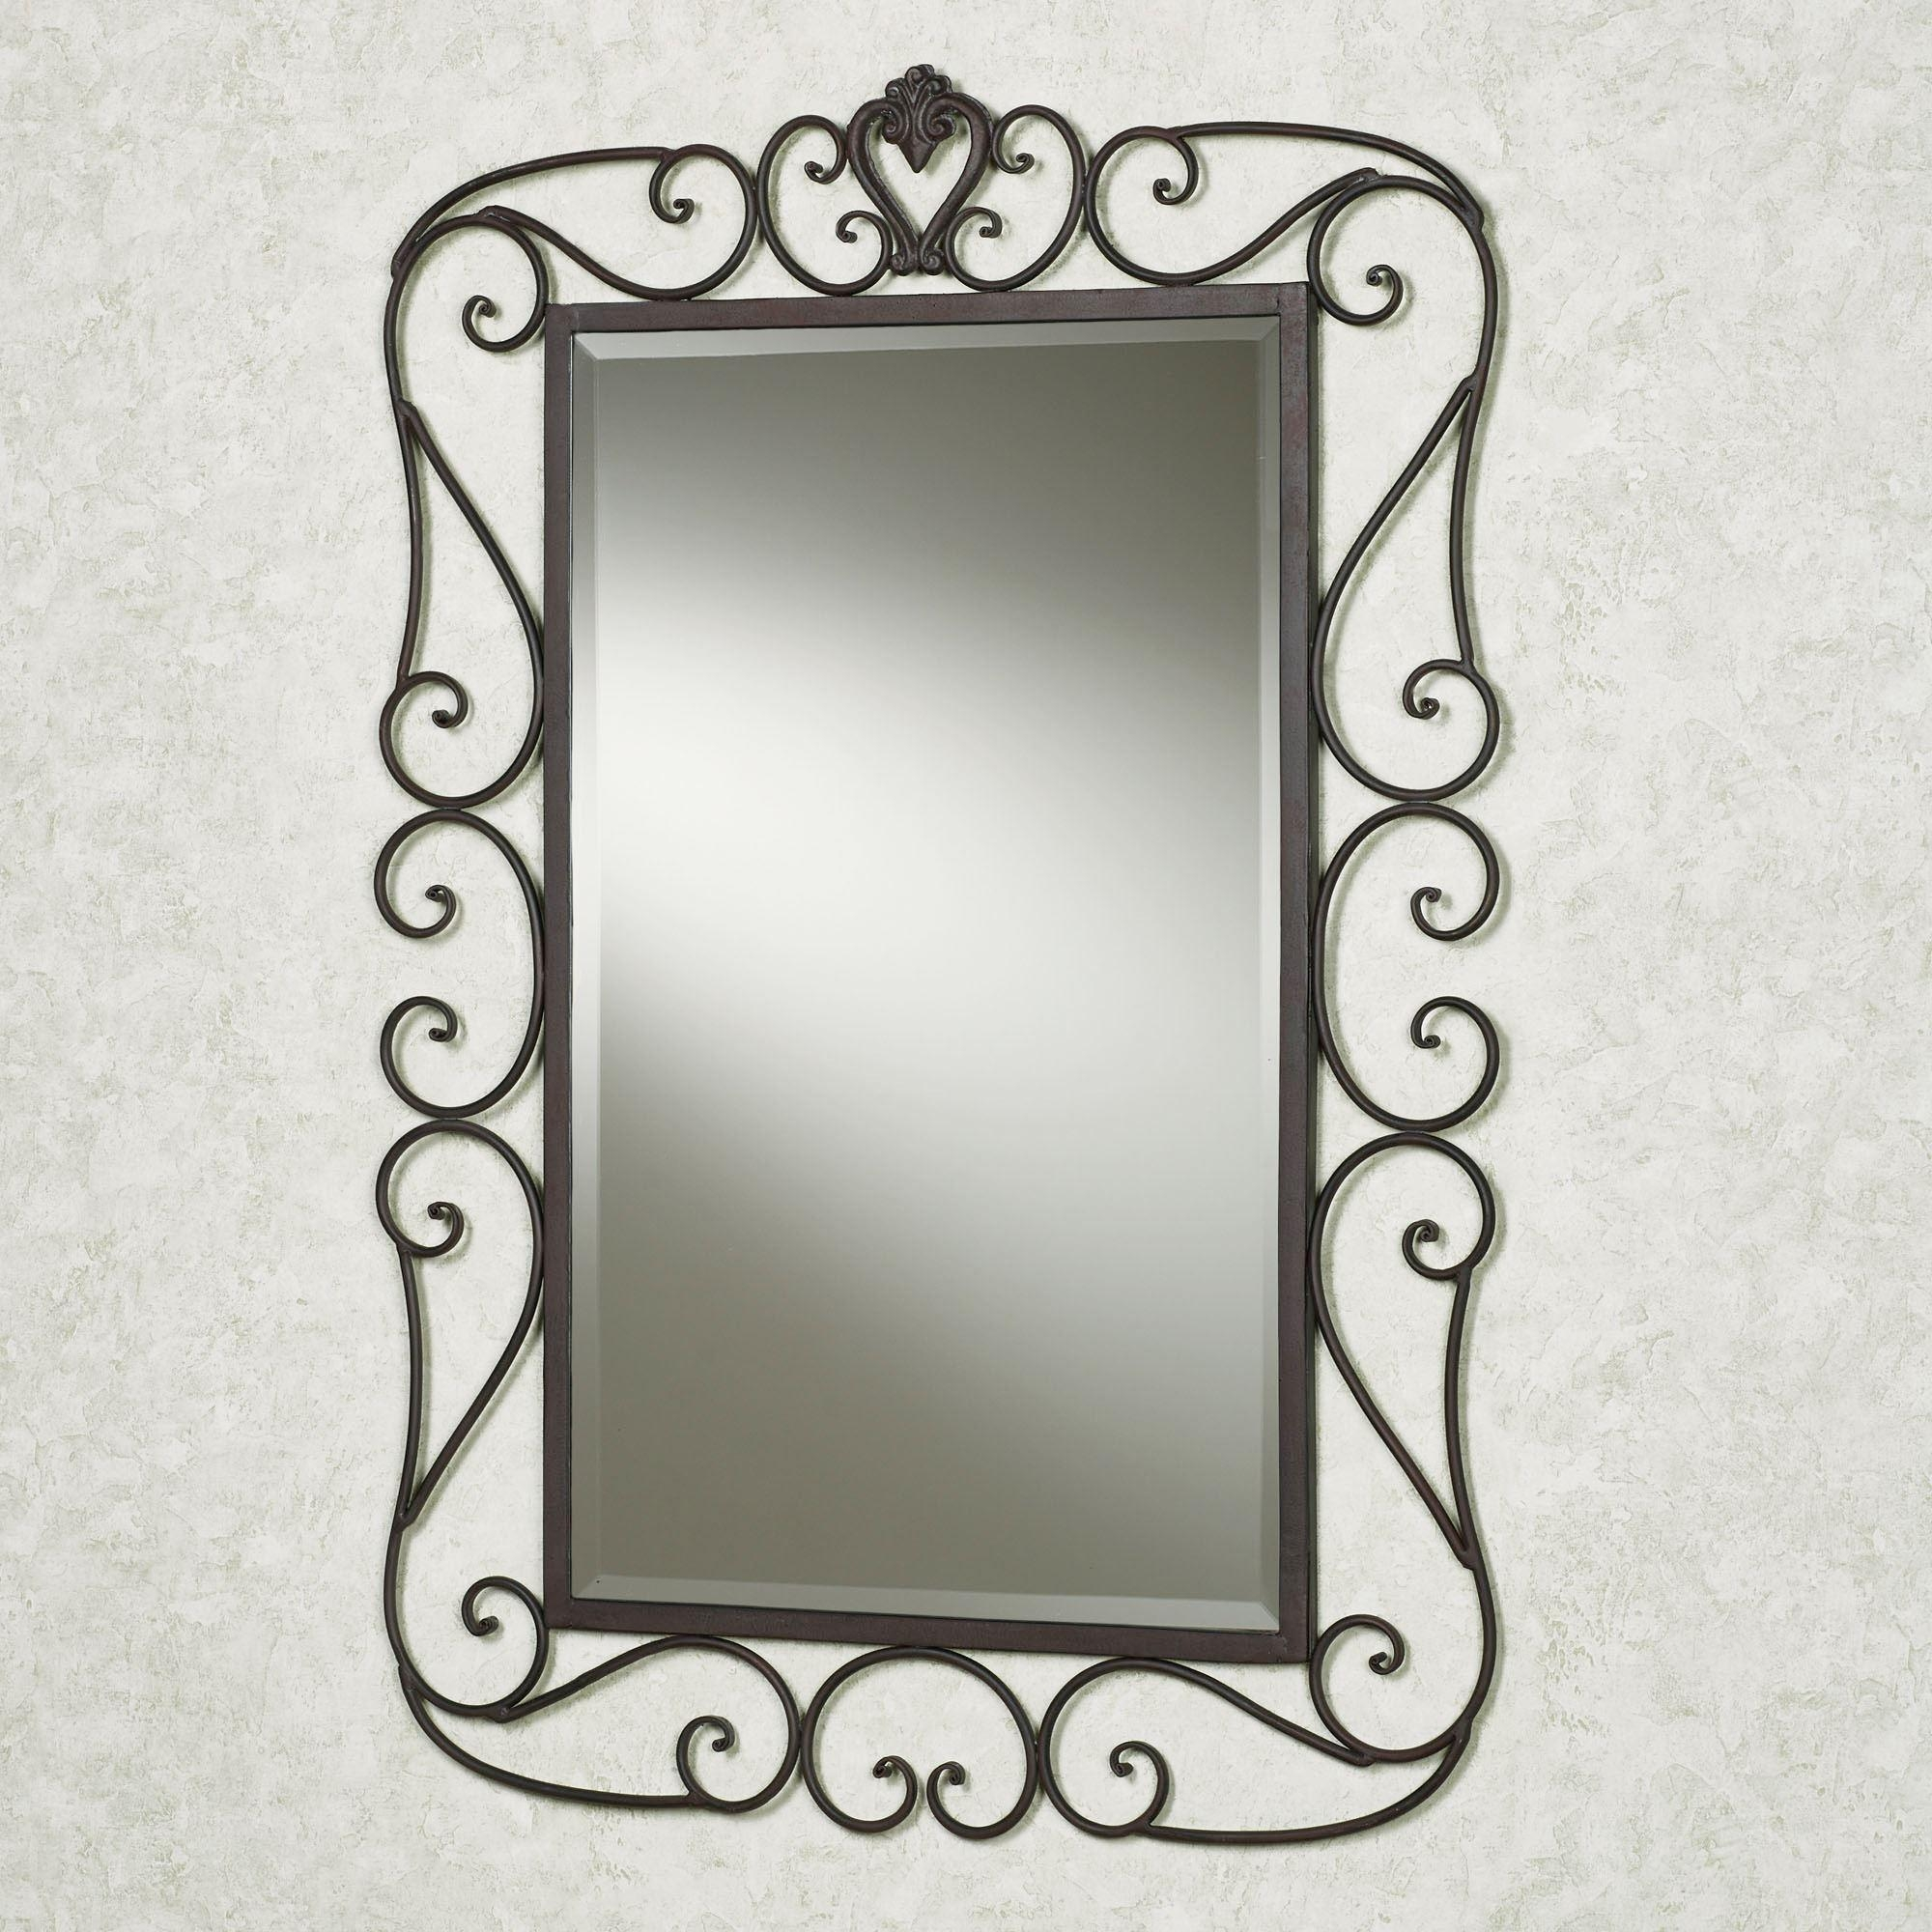 Aldabella Tuscan Slate Wrought Iron Wall Mirror Inside Rod Iron Mirrors (Image 4 of 20)